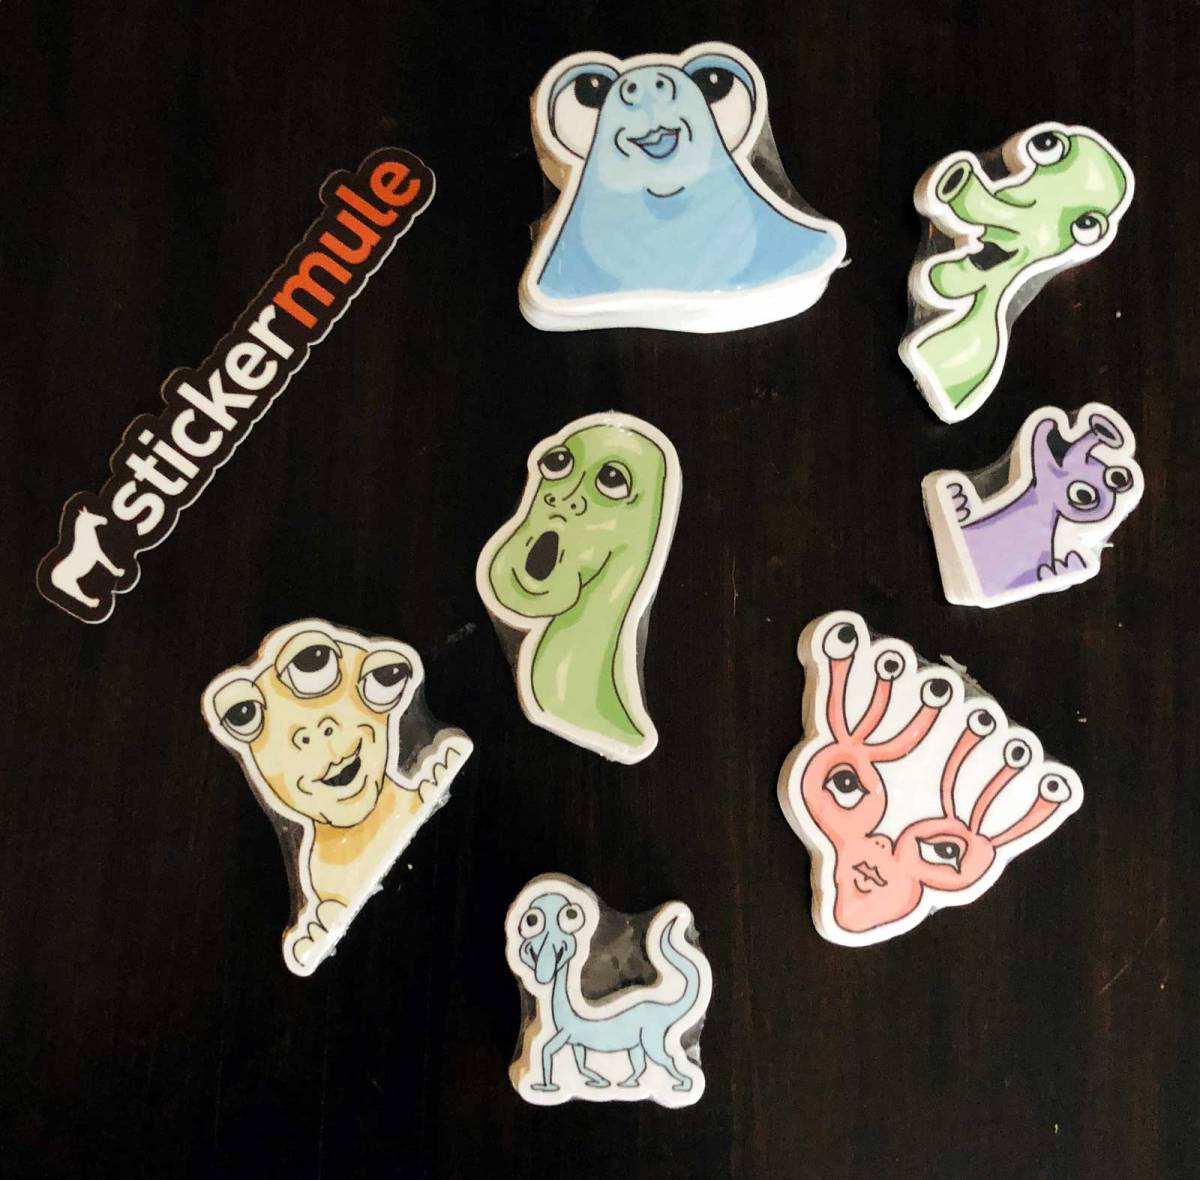 Several multicolored stickers of very cute and friendly monsters.